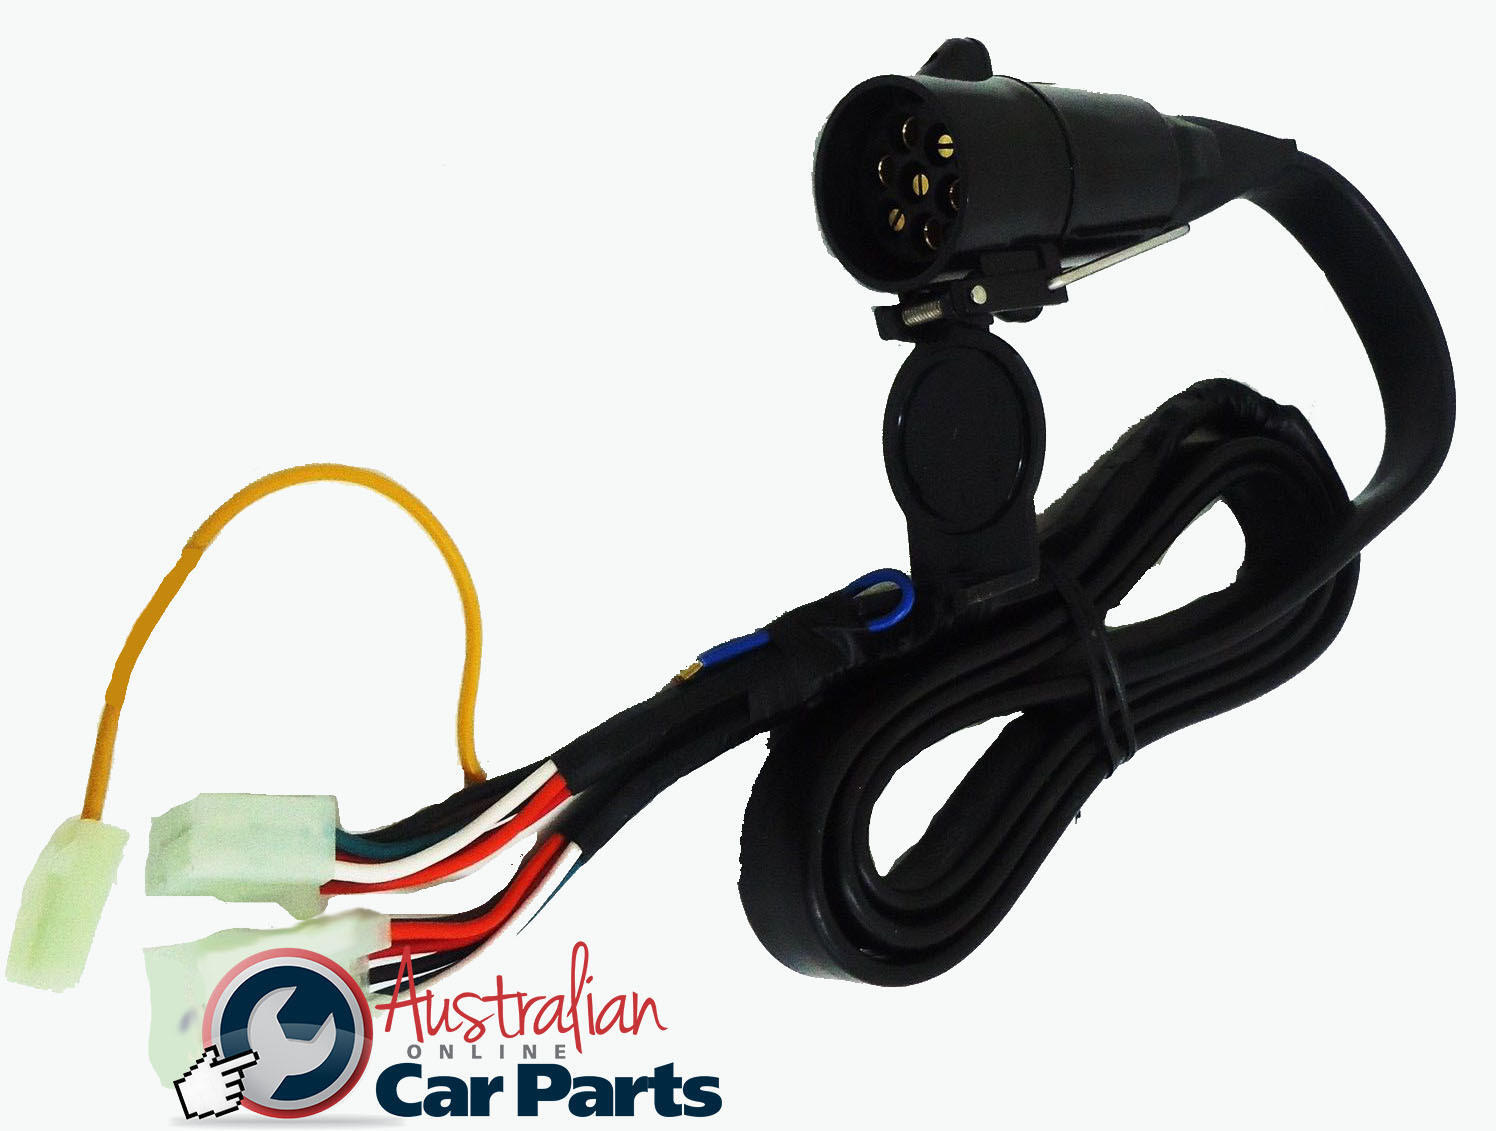 hight resolution of trailer wiring harness suitable for holden commodore vt vx vy vz genuine round plug 92140147